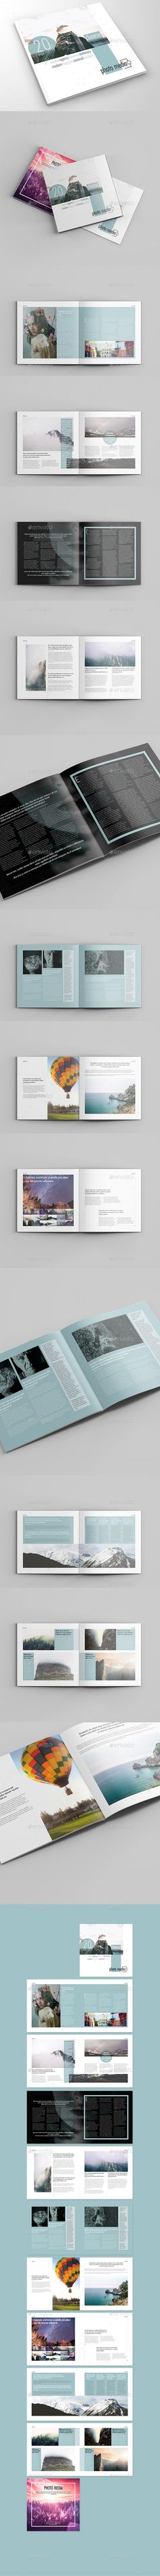 Photo Media Square Catalog & Brochure — InDesign INDD #business brochure #both side • Download ➝ https://graphicriver.net/item/photo-media-square-catalogbrochure/19927711?ref=pxcr